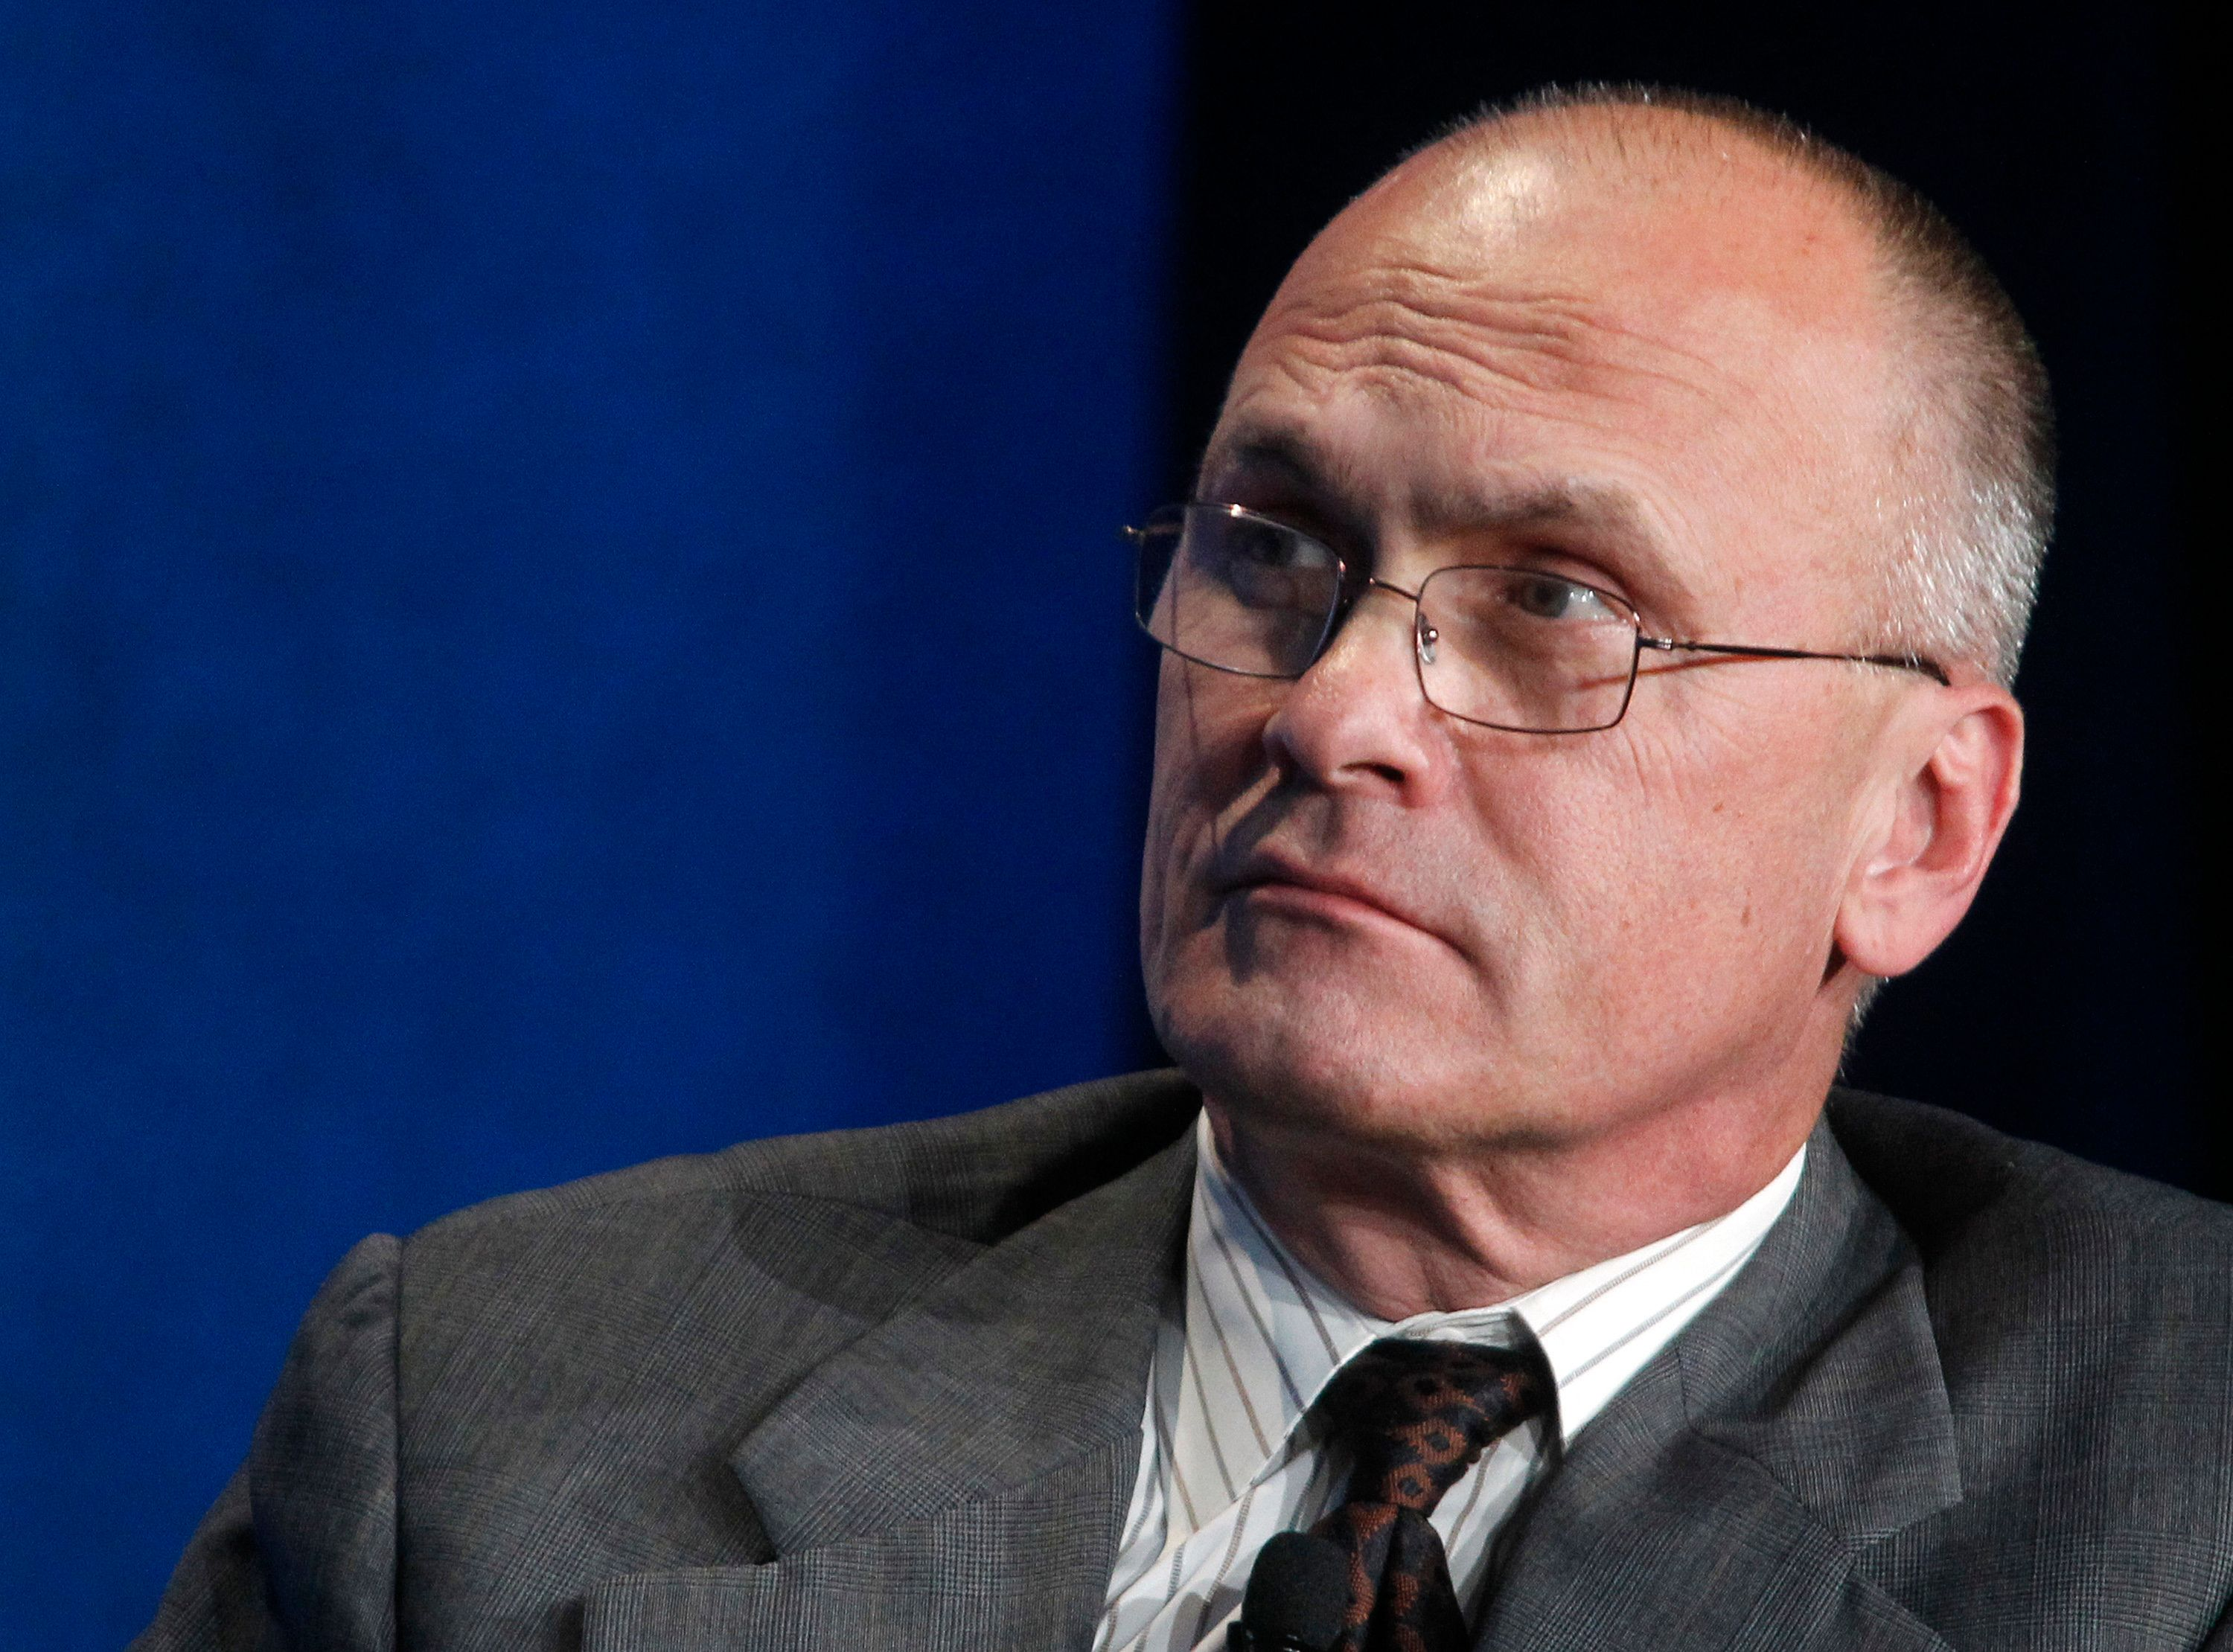 """Andrew Puzder, CEO of CKE Restaurants, takes part in a panel discussion titled """"Understanding the Post-Recession Consumer"""" at the Milken Institute Global Conference in Beverly Hills, California  April 30, 2012.  REUTERS/Fred Prouser  (UNITED STATES - Tags: BUSINESS FOOD)"""